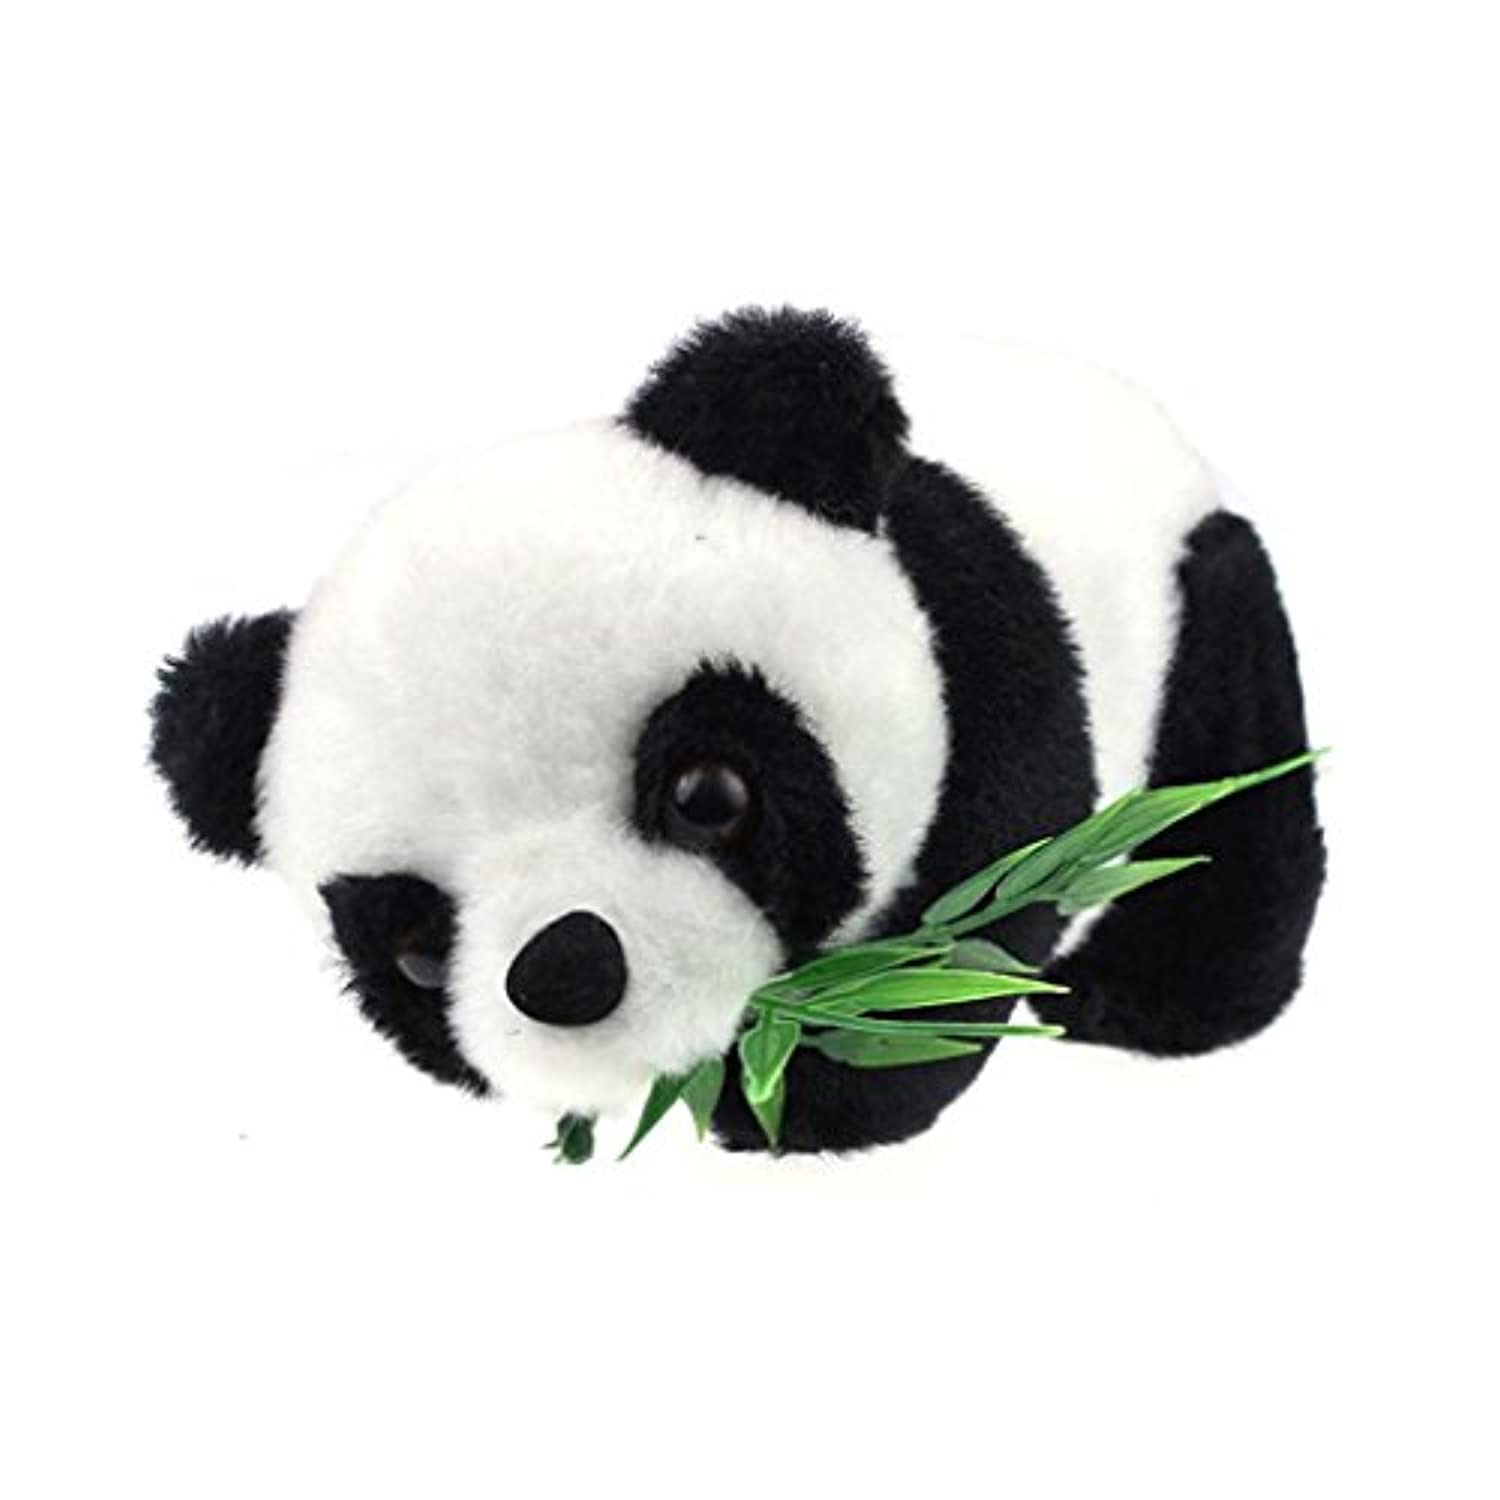 DDLBizソフトCute Panda Eat Bamboo動物人形おもちゃGood Gift For Babys子供用M